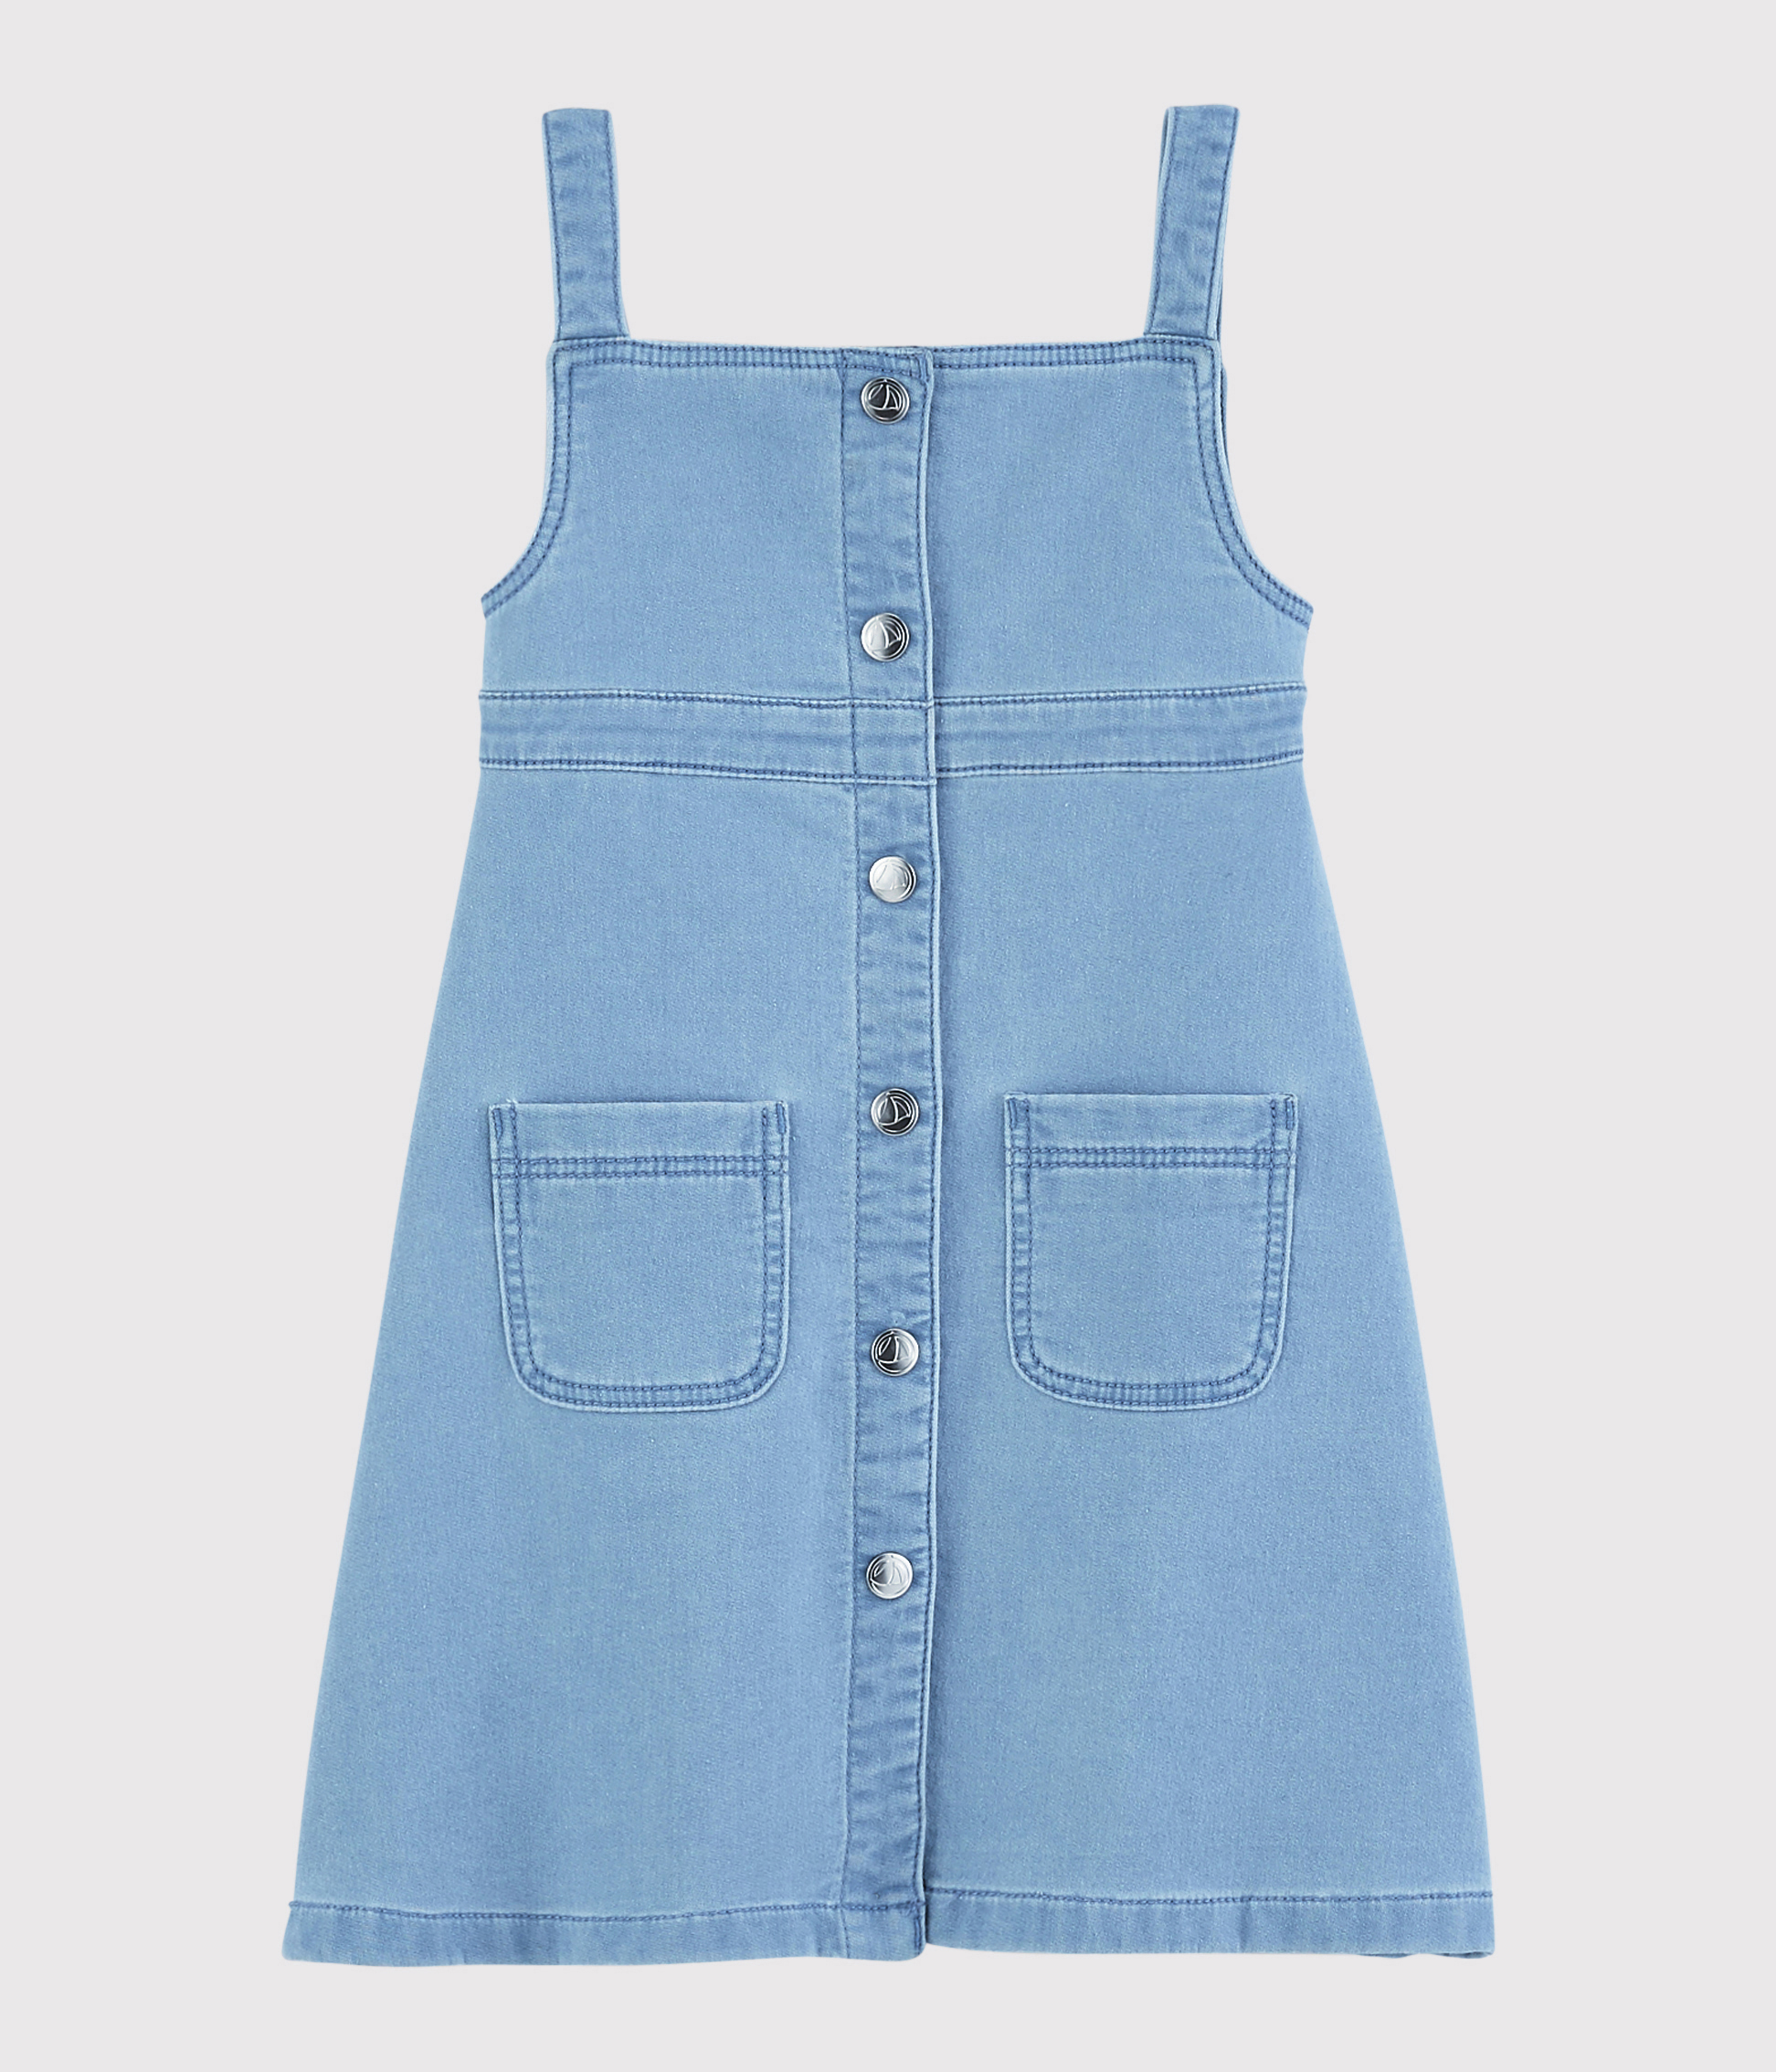 Robe salopette en molleton denim enfant fille